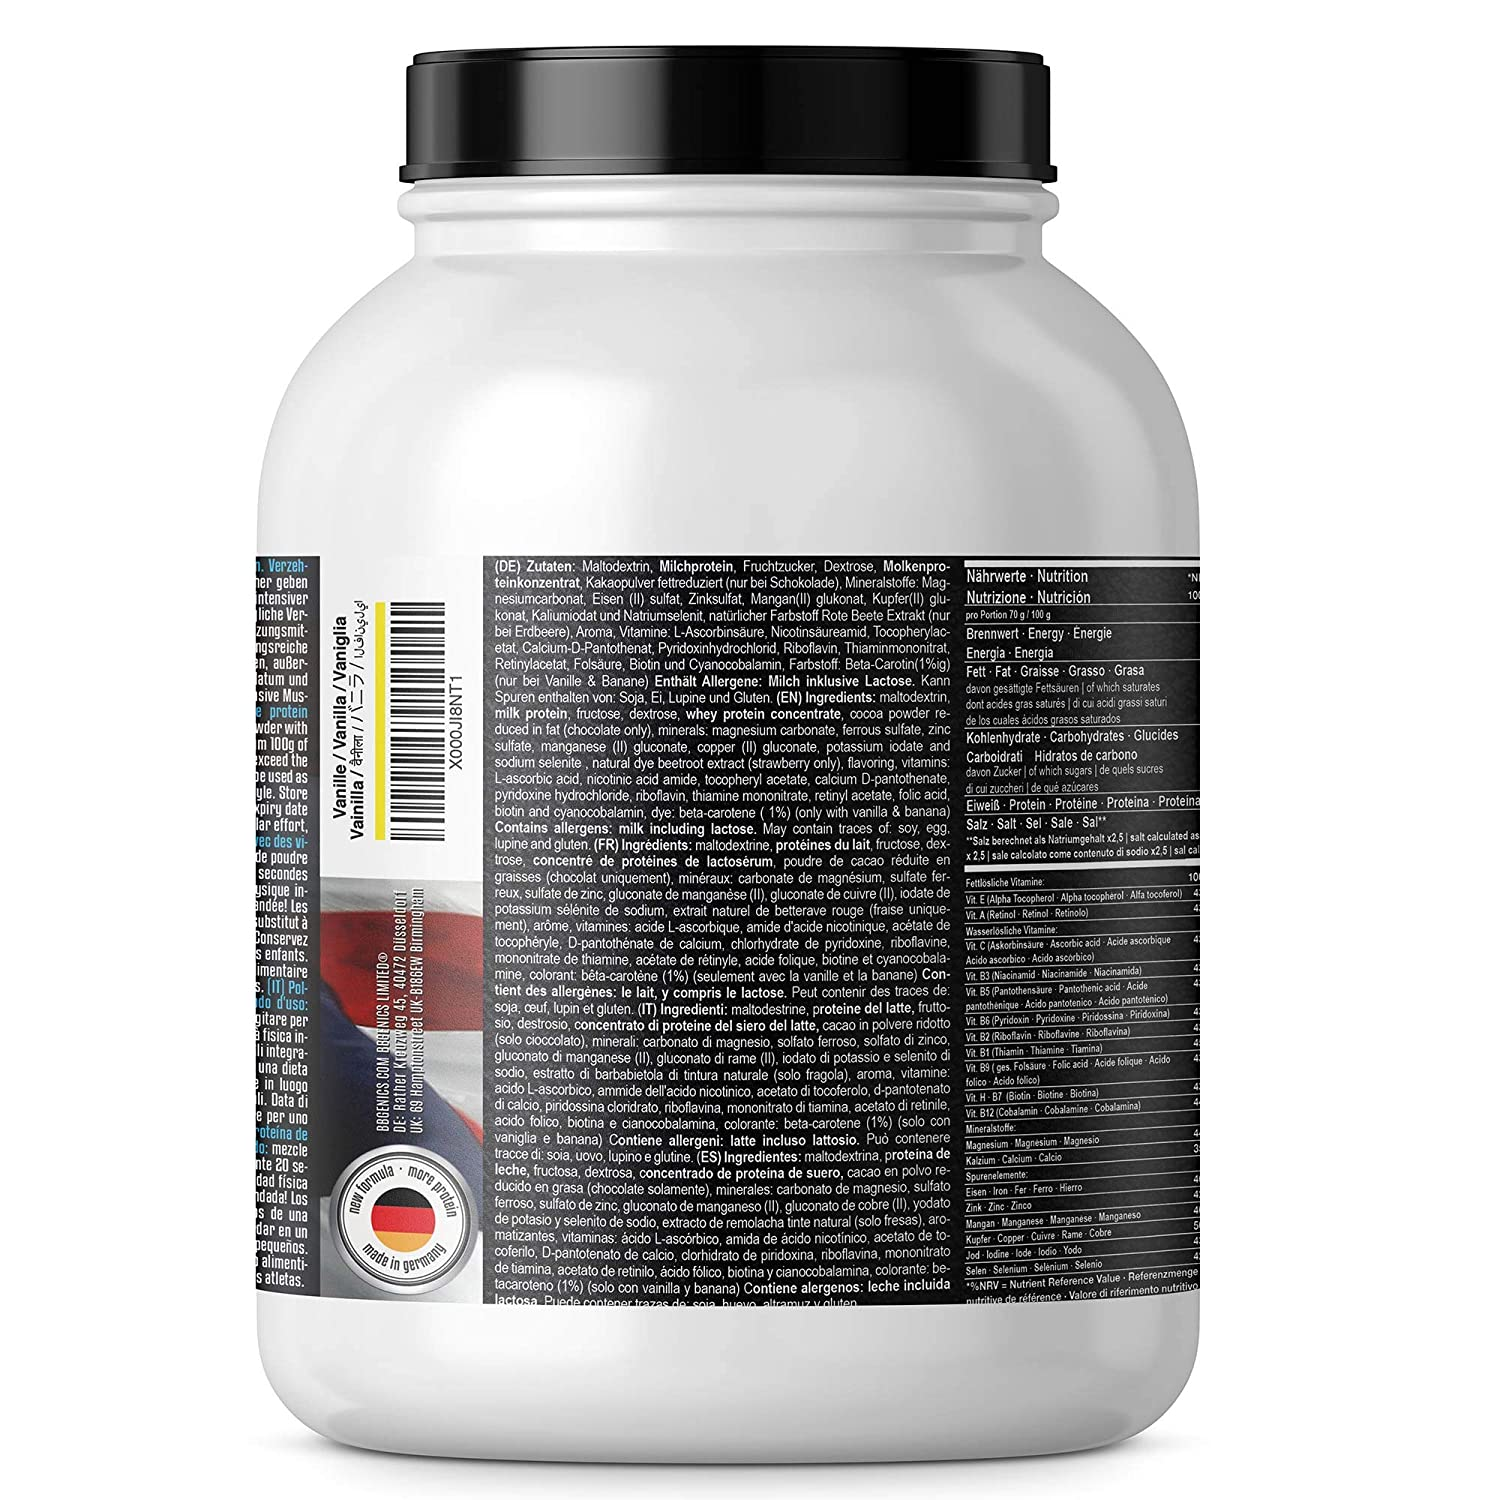 Heavy Weight Gainer, hidratos de carbono y proteínas, suplementos dietéticos BBGENICS, 2000g chocolate: Amazon.es: Salud y cuidado personal